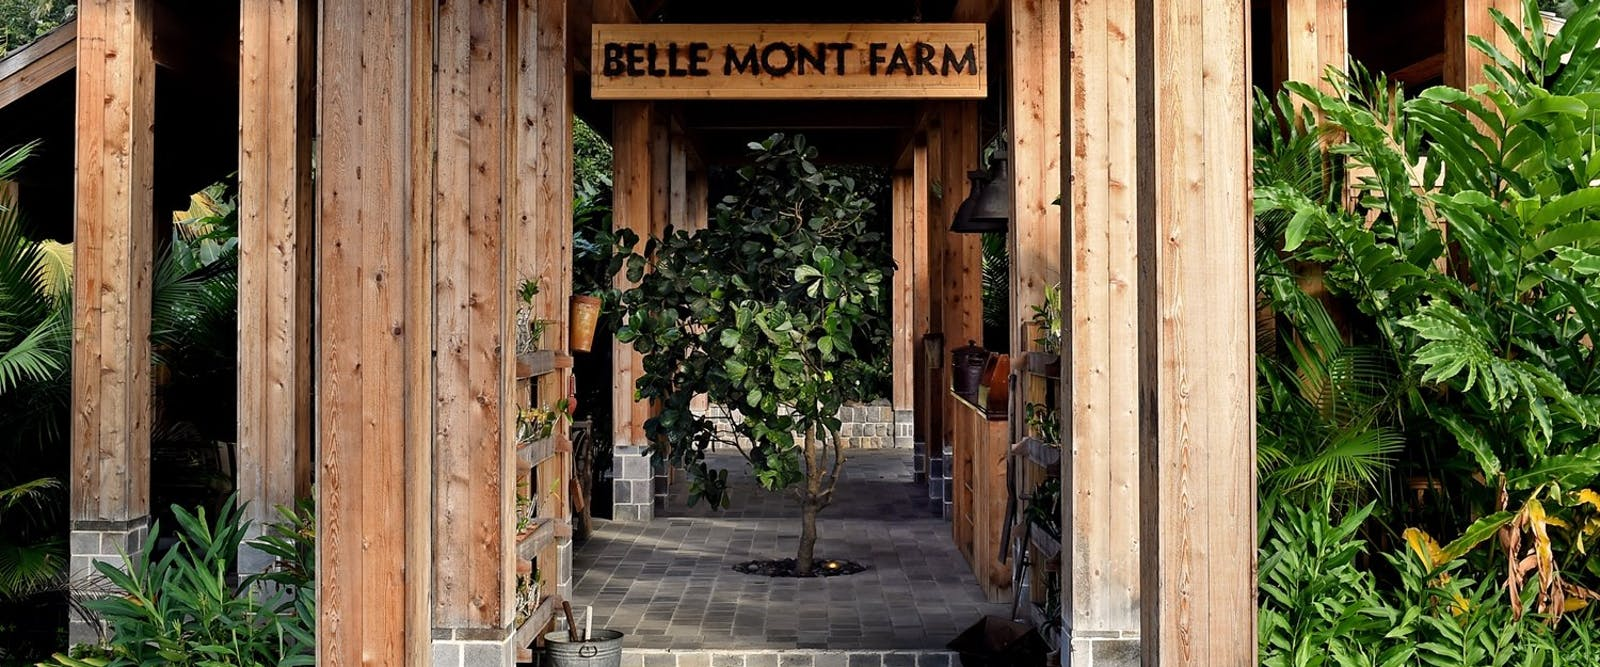 Entrance to Belle Mont Farm, St Kitts